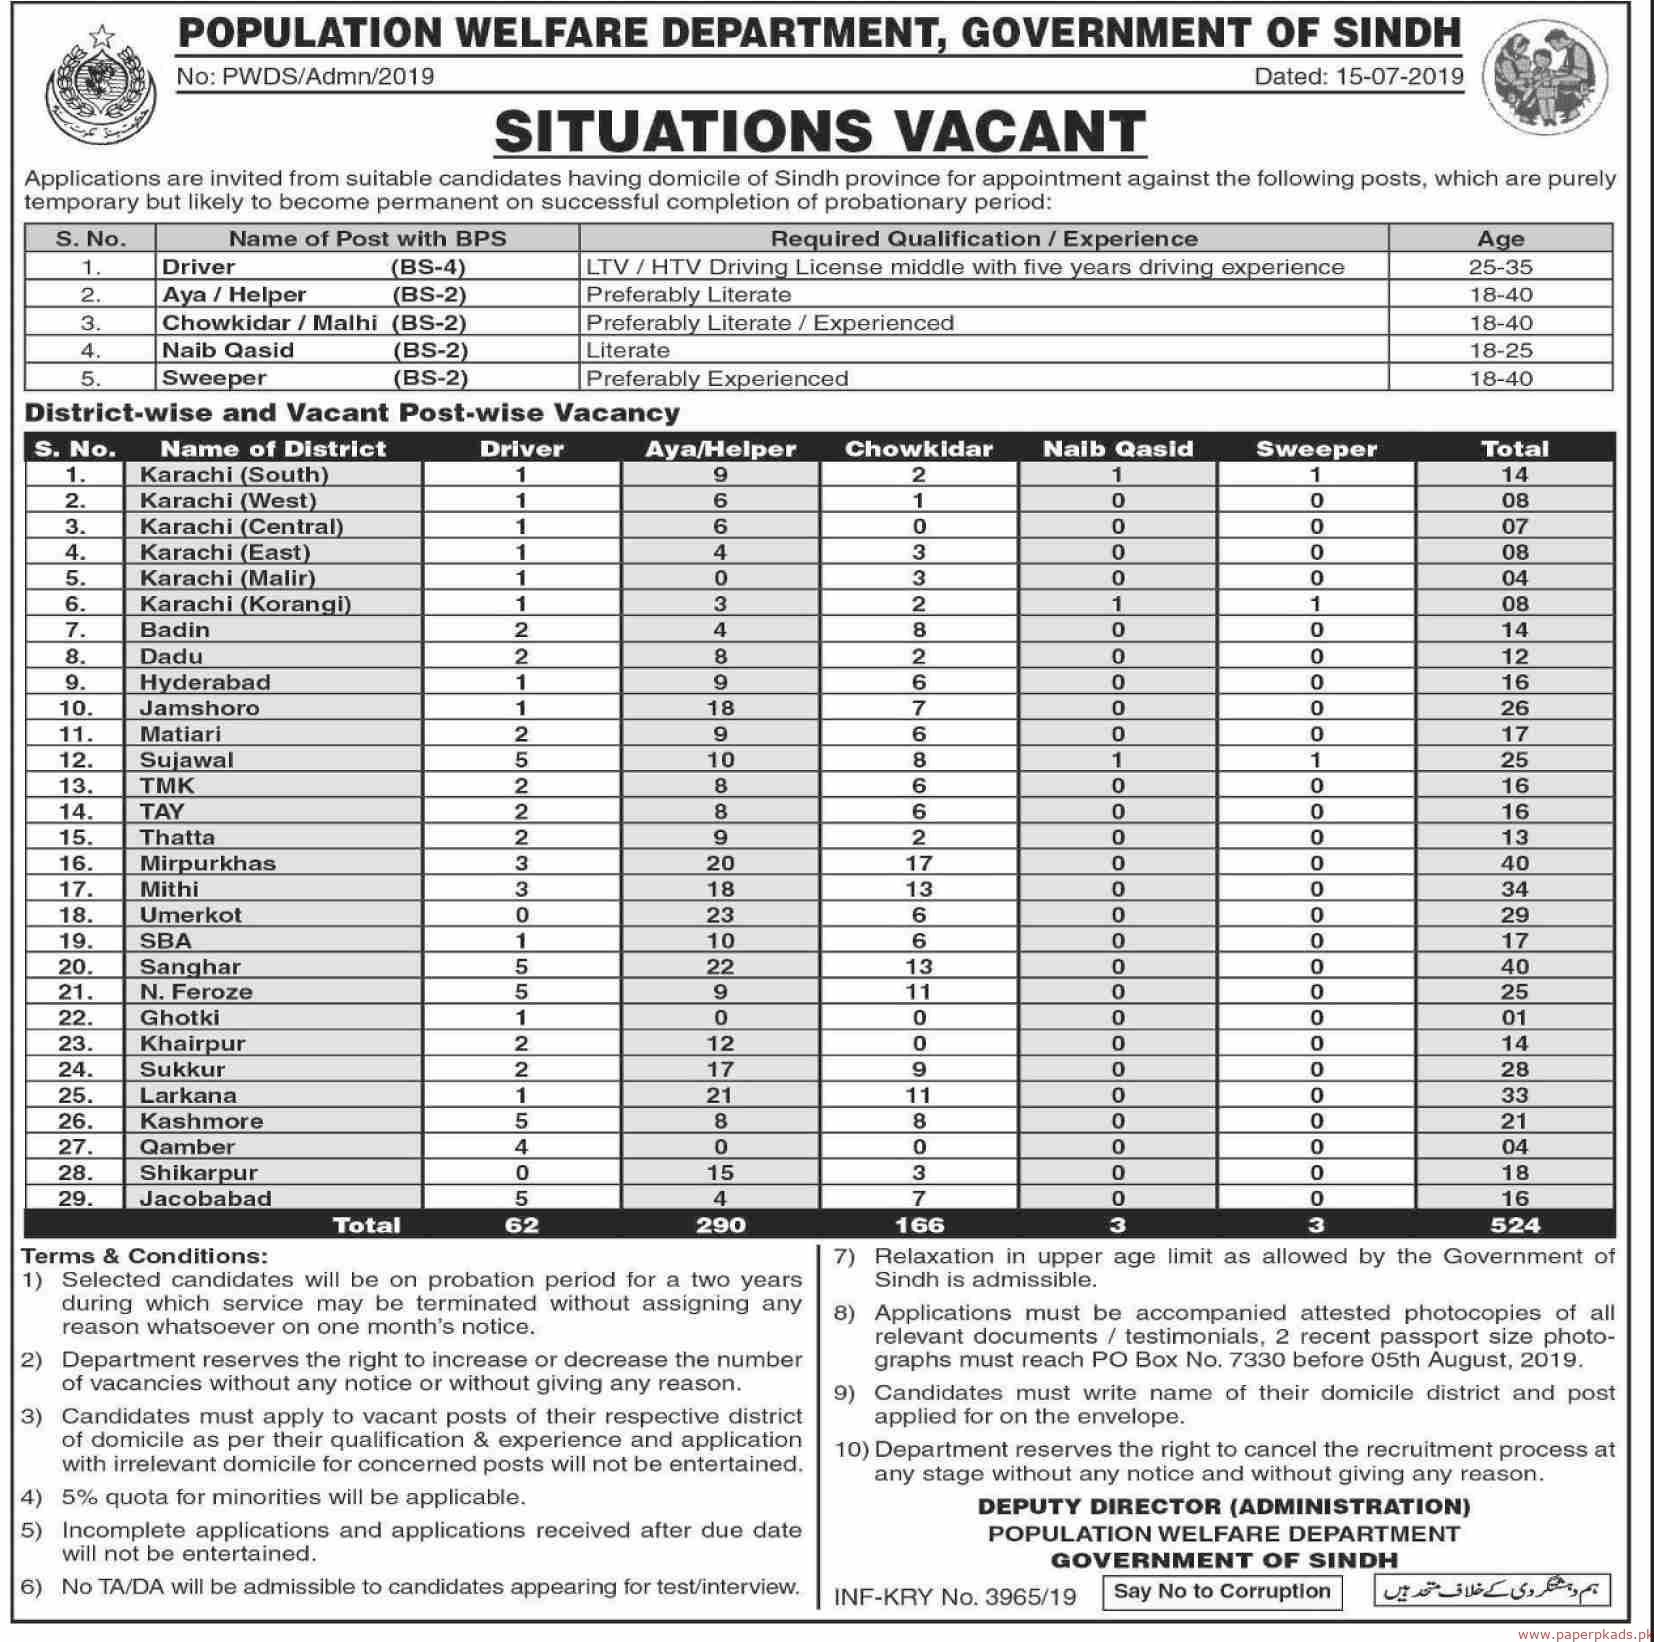 Population Welfare Department Government of Sindh Jobs 2019 Latest